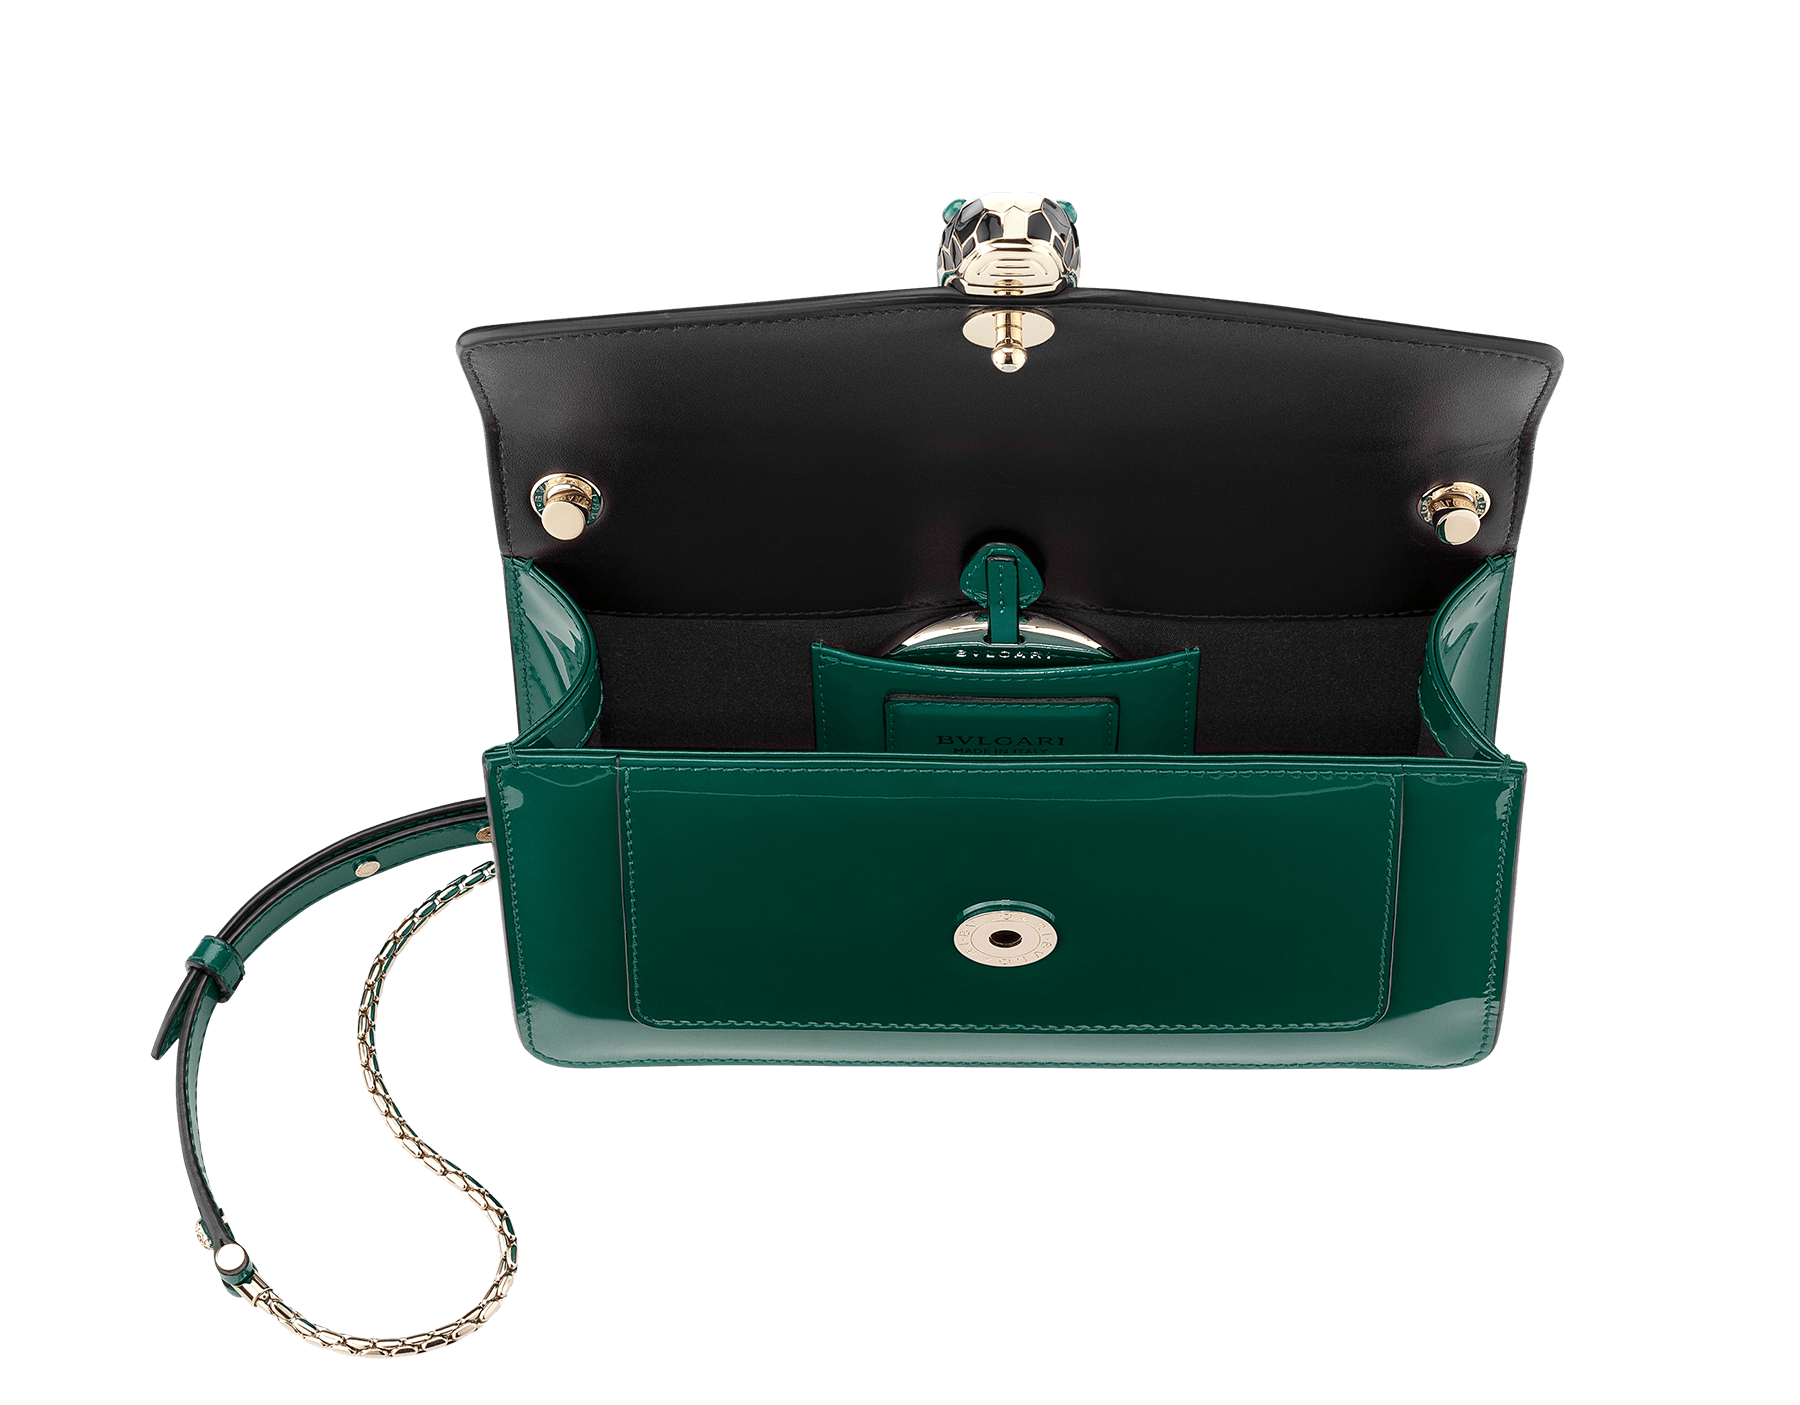 Flap cover bag Serpenti Forever in forest emerald brushed metallic calf leather. Brass light gold plated snake head closure in black and white enamel with eyes in green malachite. 283525 image 2